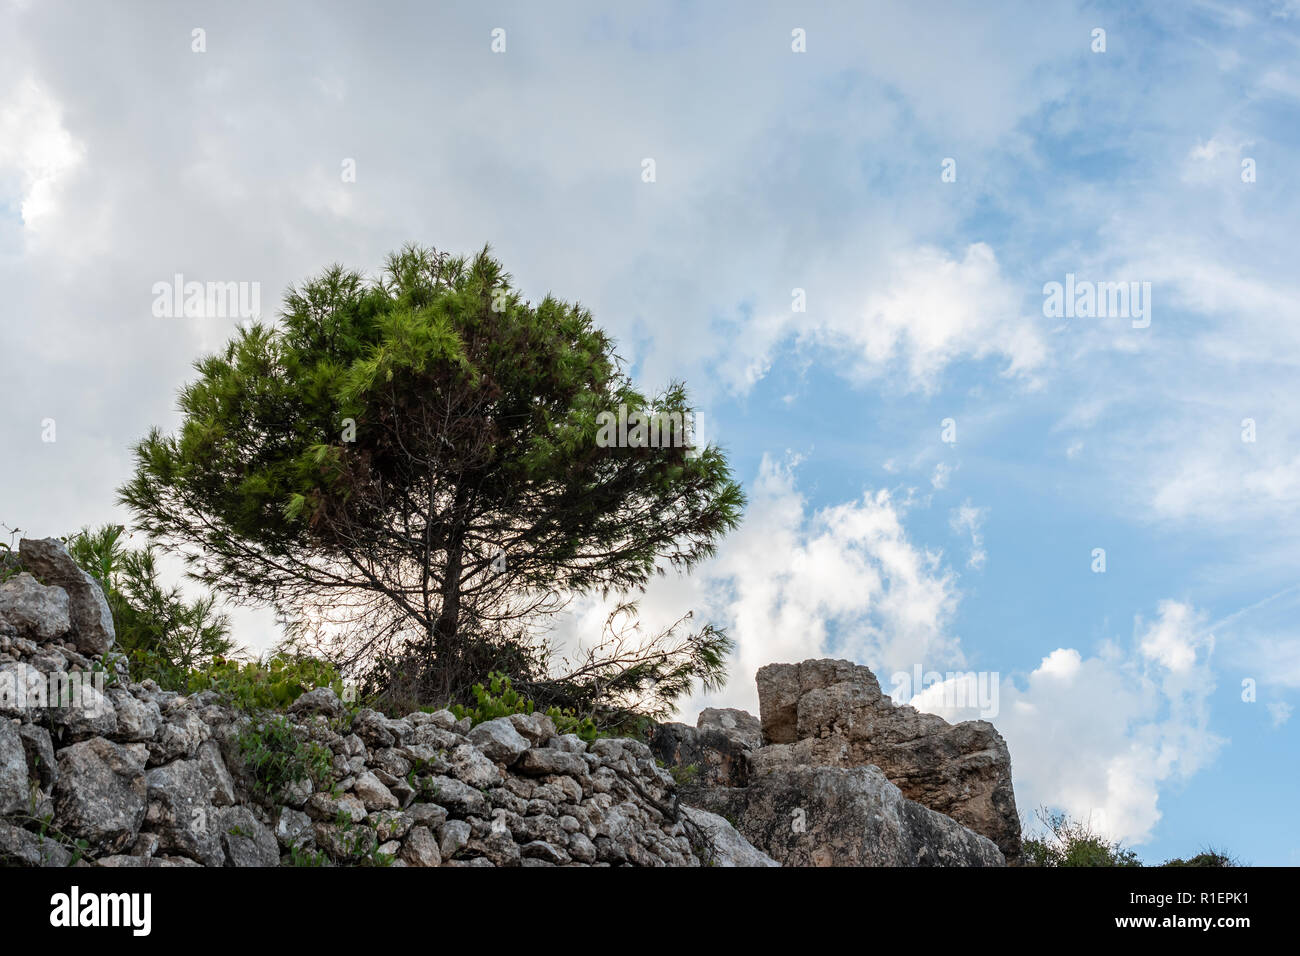 One tree with a cloudy sky background. on the rocks. Pinus halepensis, Aleppo pine, evergreen tree. Horizontal. - Stock Image